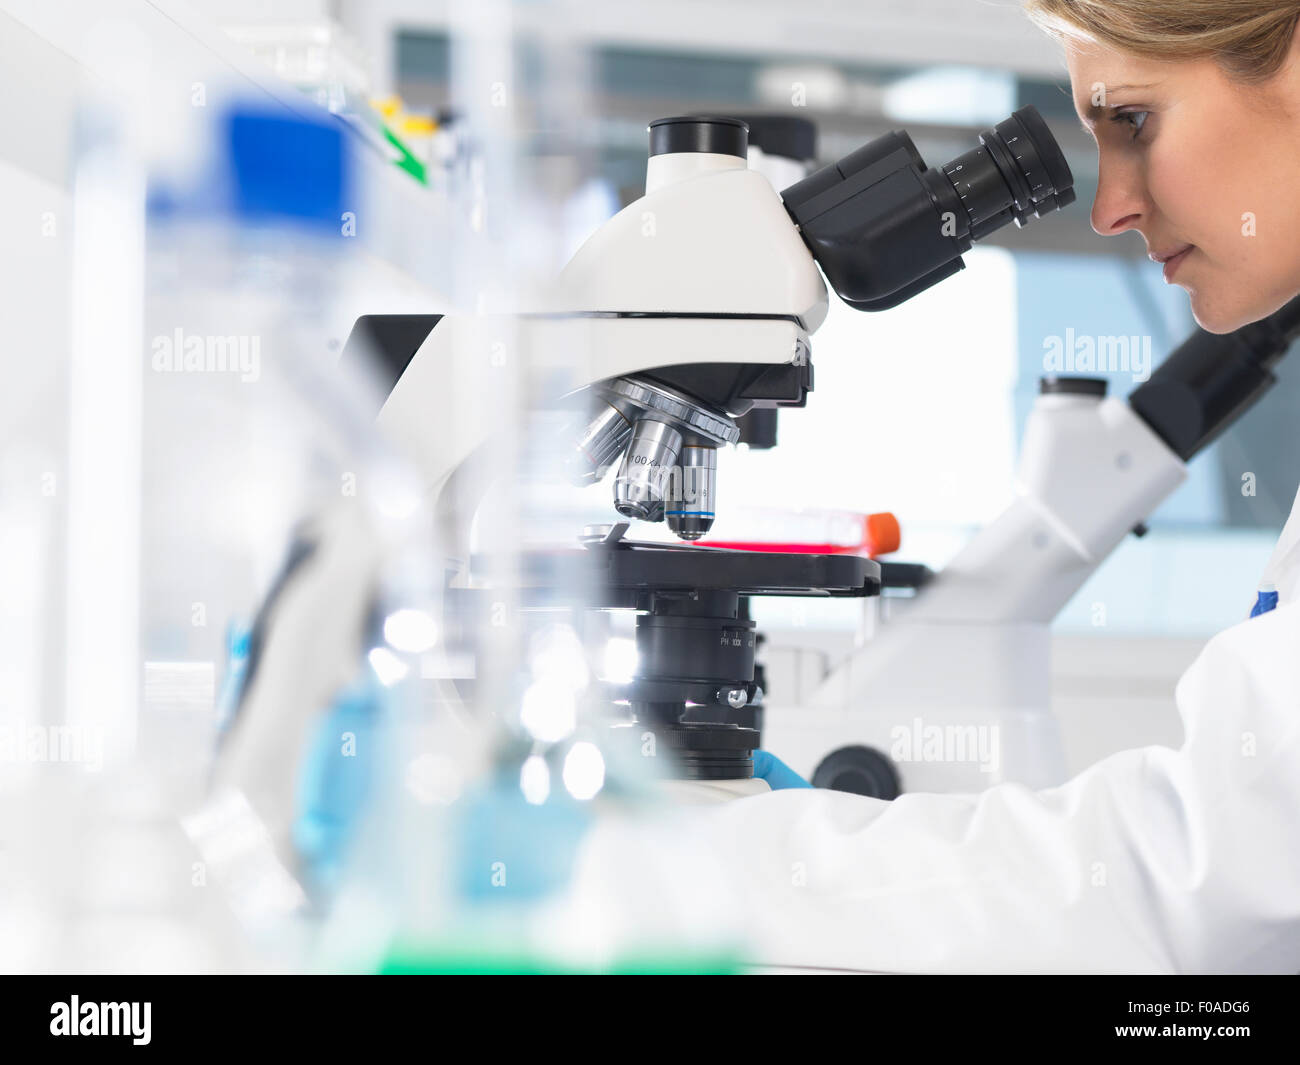 Medical scientist viewing sample slide under a microscope in a laboratory - Stock Image